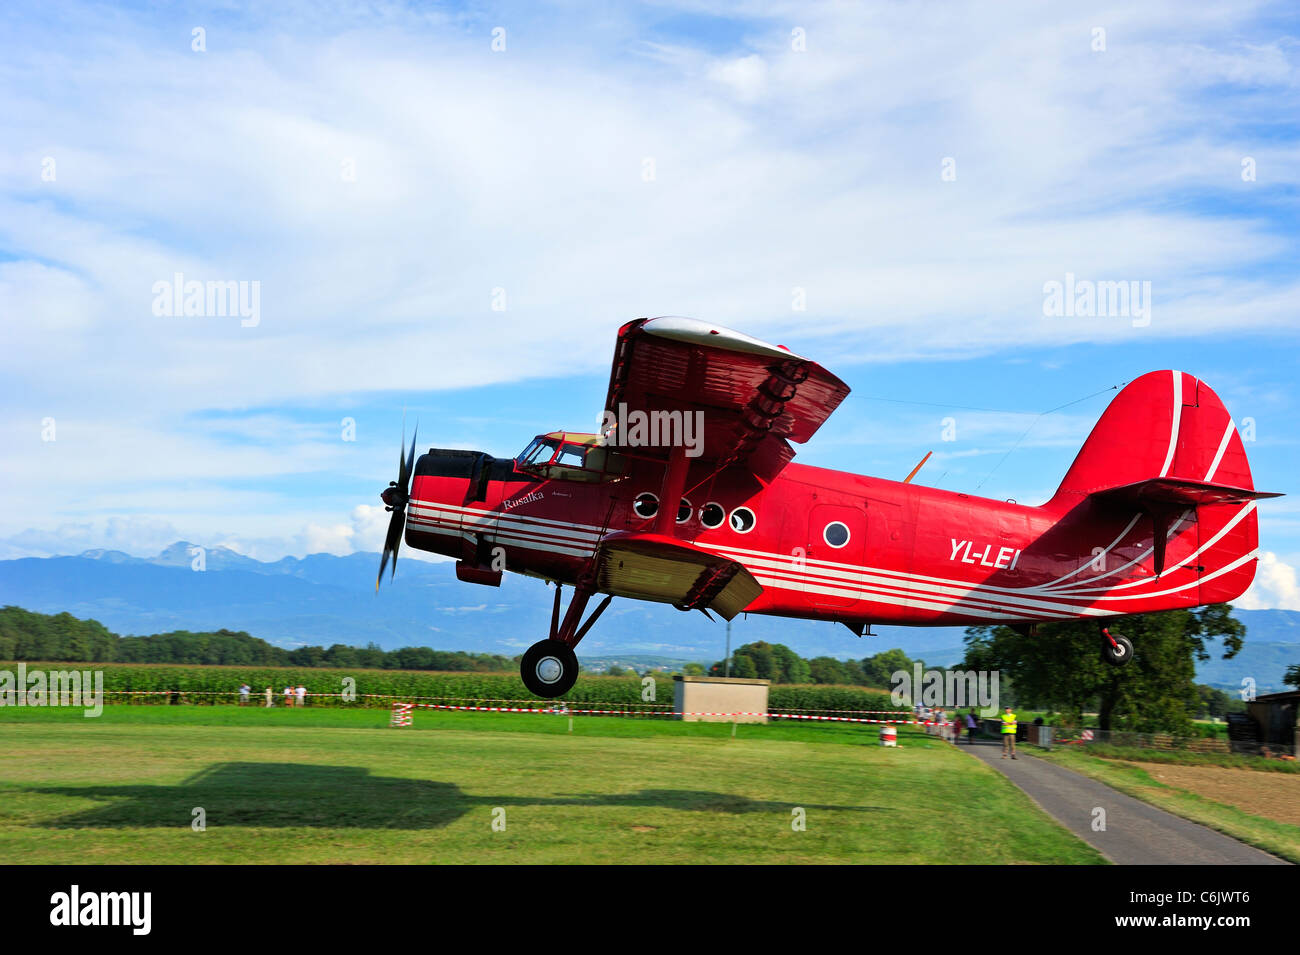 An Antonov AN-2 biplane landing. Motion blur on the background. Space for text in the sky. - Stock Image